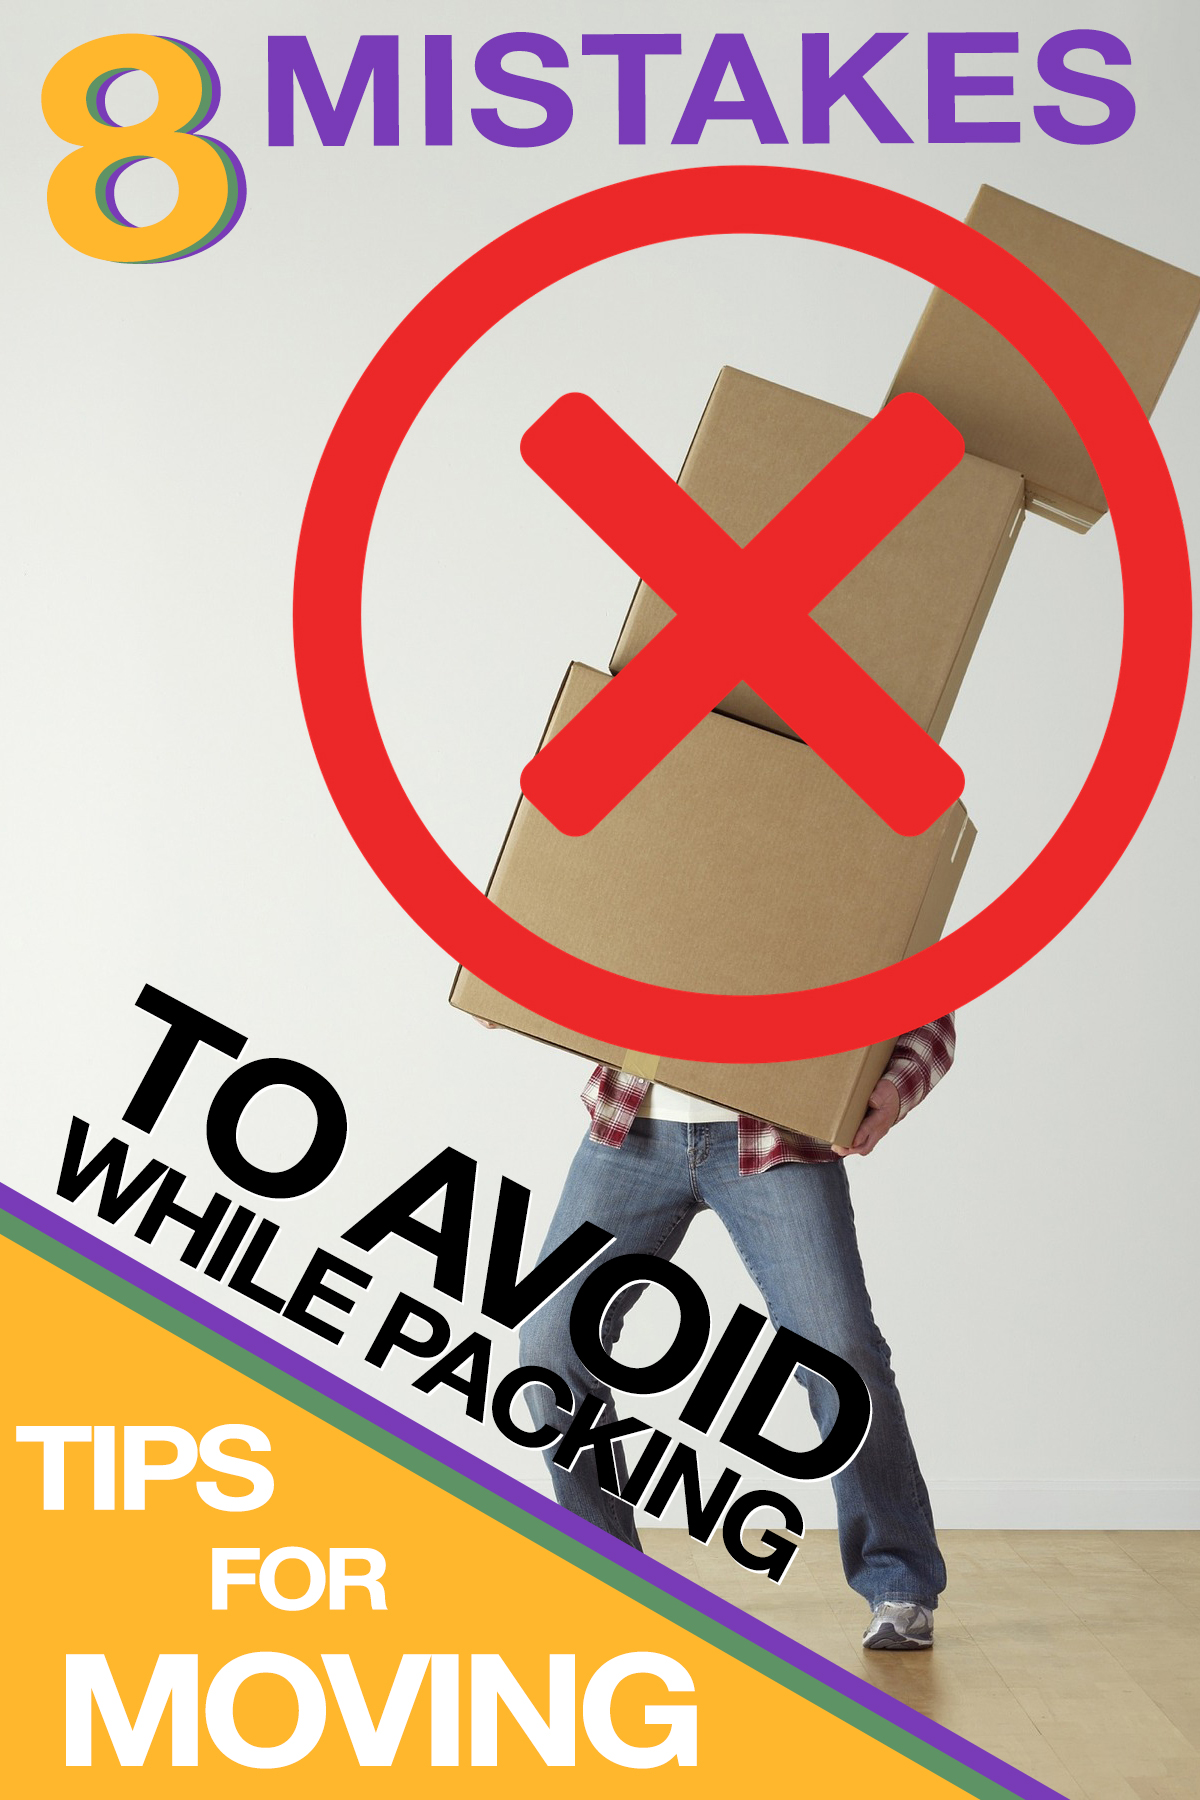 8_Critical_Mistakes_To_Avoid_While_Packing_2 copy